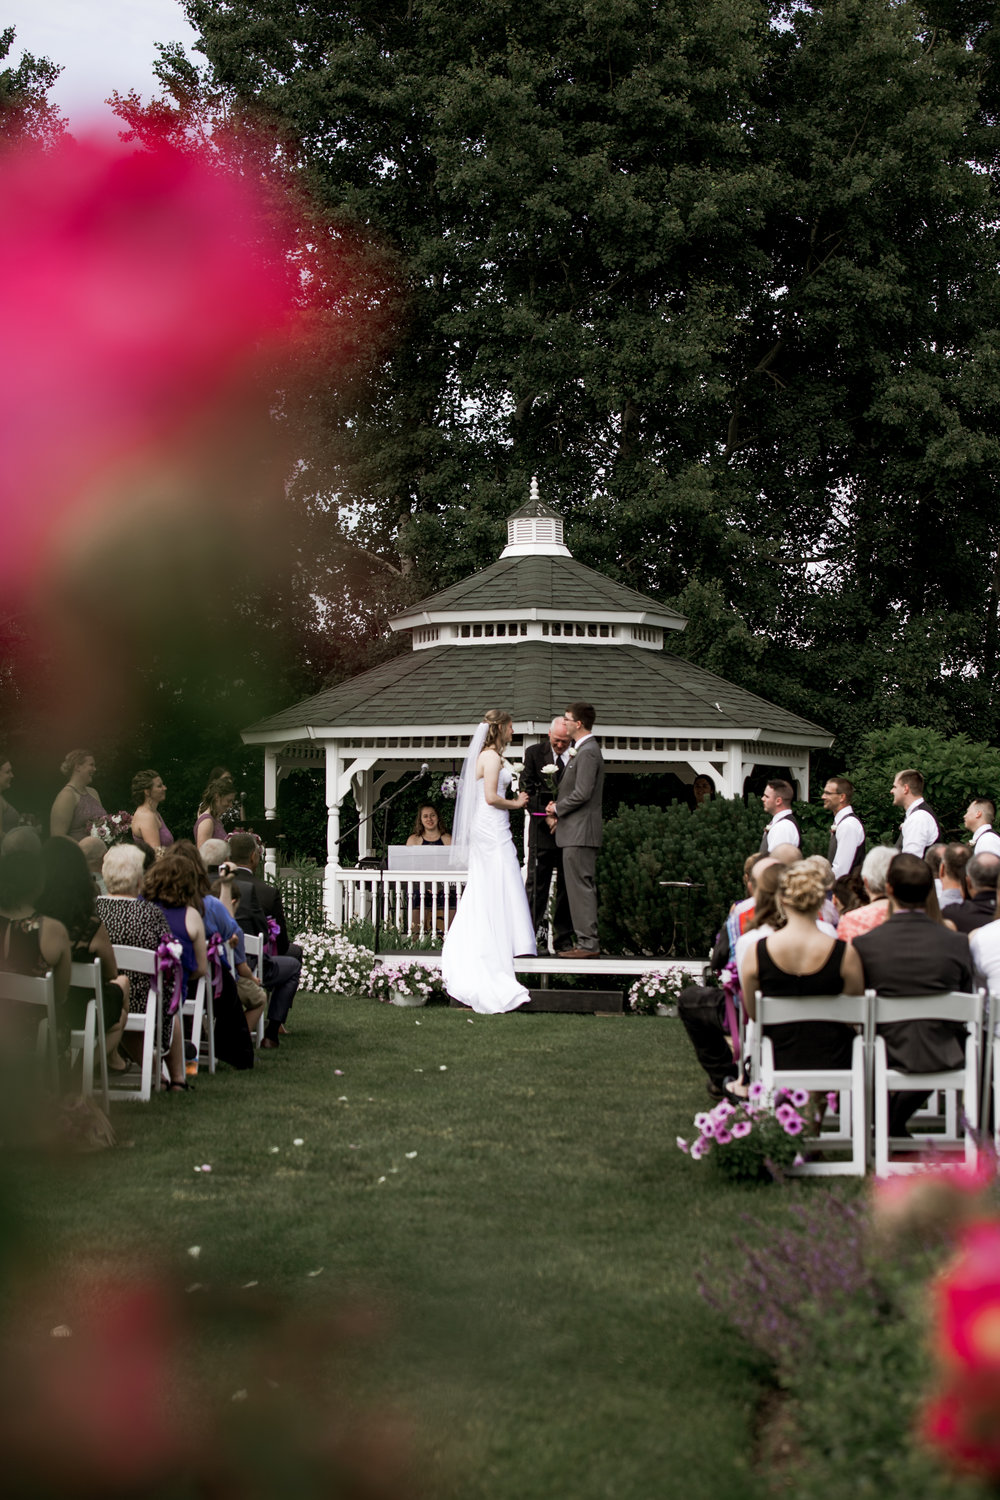 The Marq Wedding - Adventure Photographer - Outdoor Ceremony with Gazebo - Hove Brides - Hove Photographer